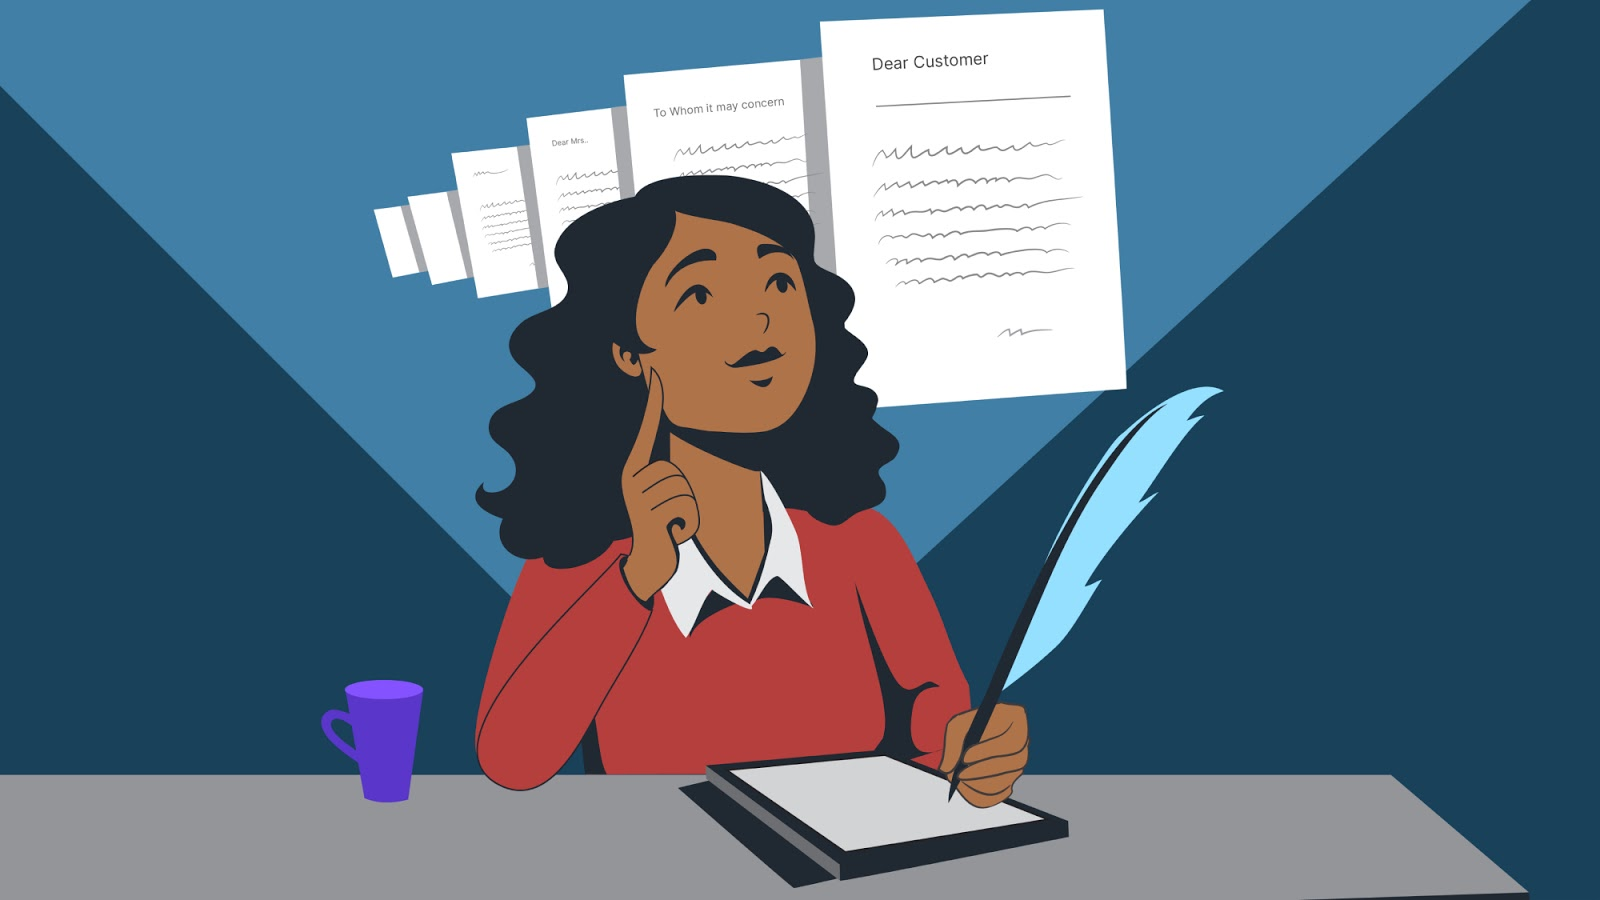 Illustration of a woman using a tablet to draft an email newsletter on a blue background